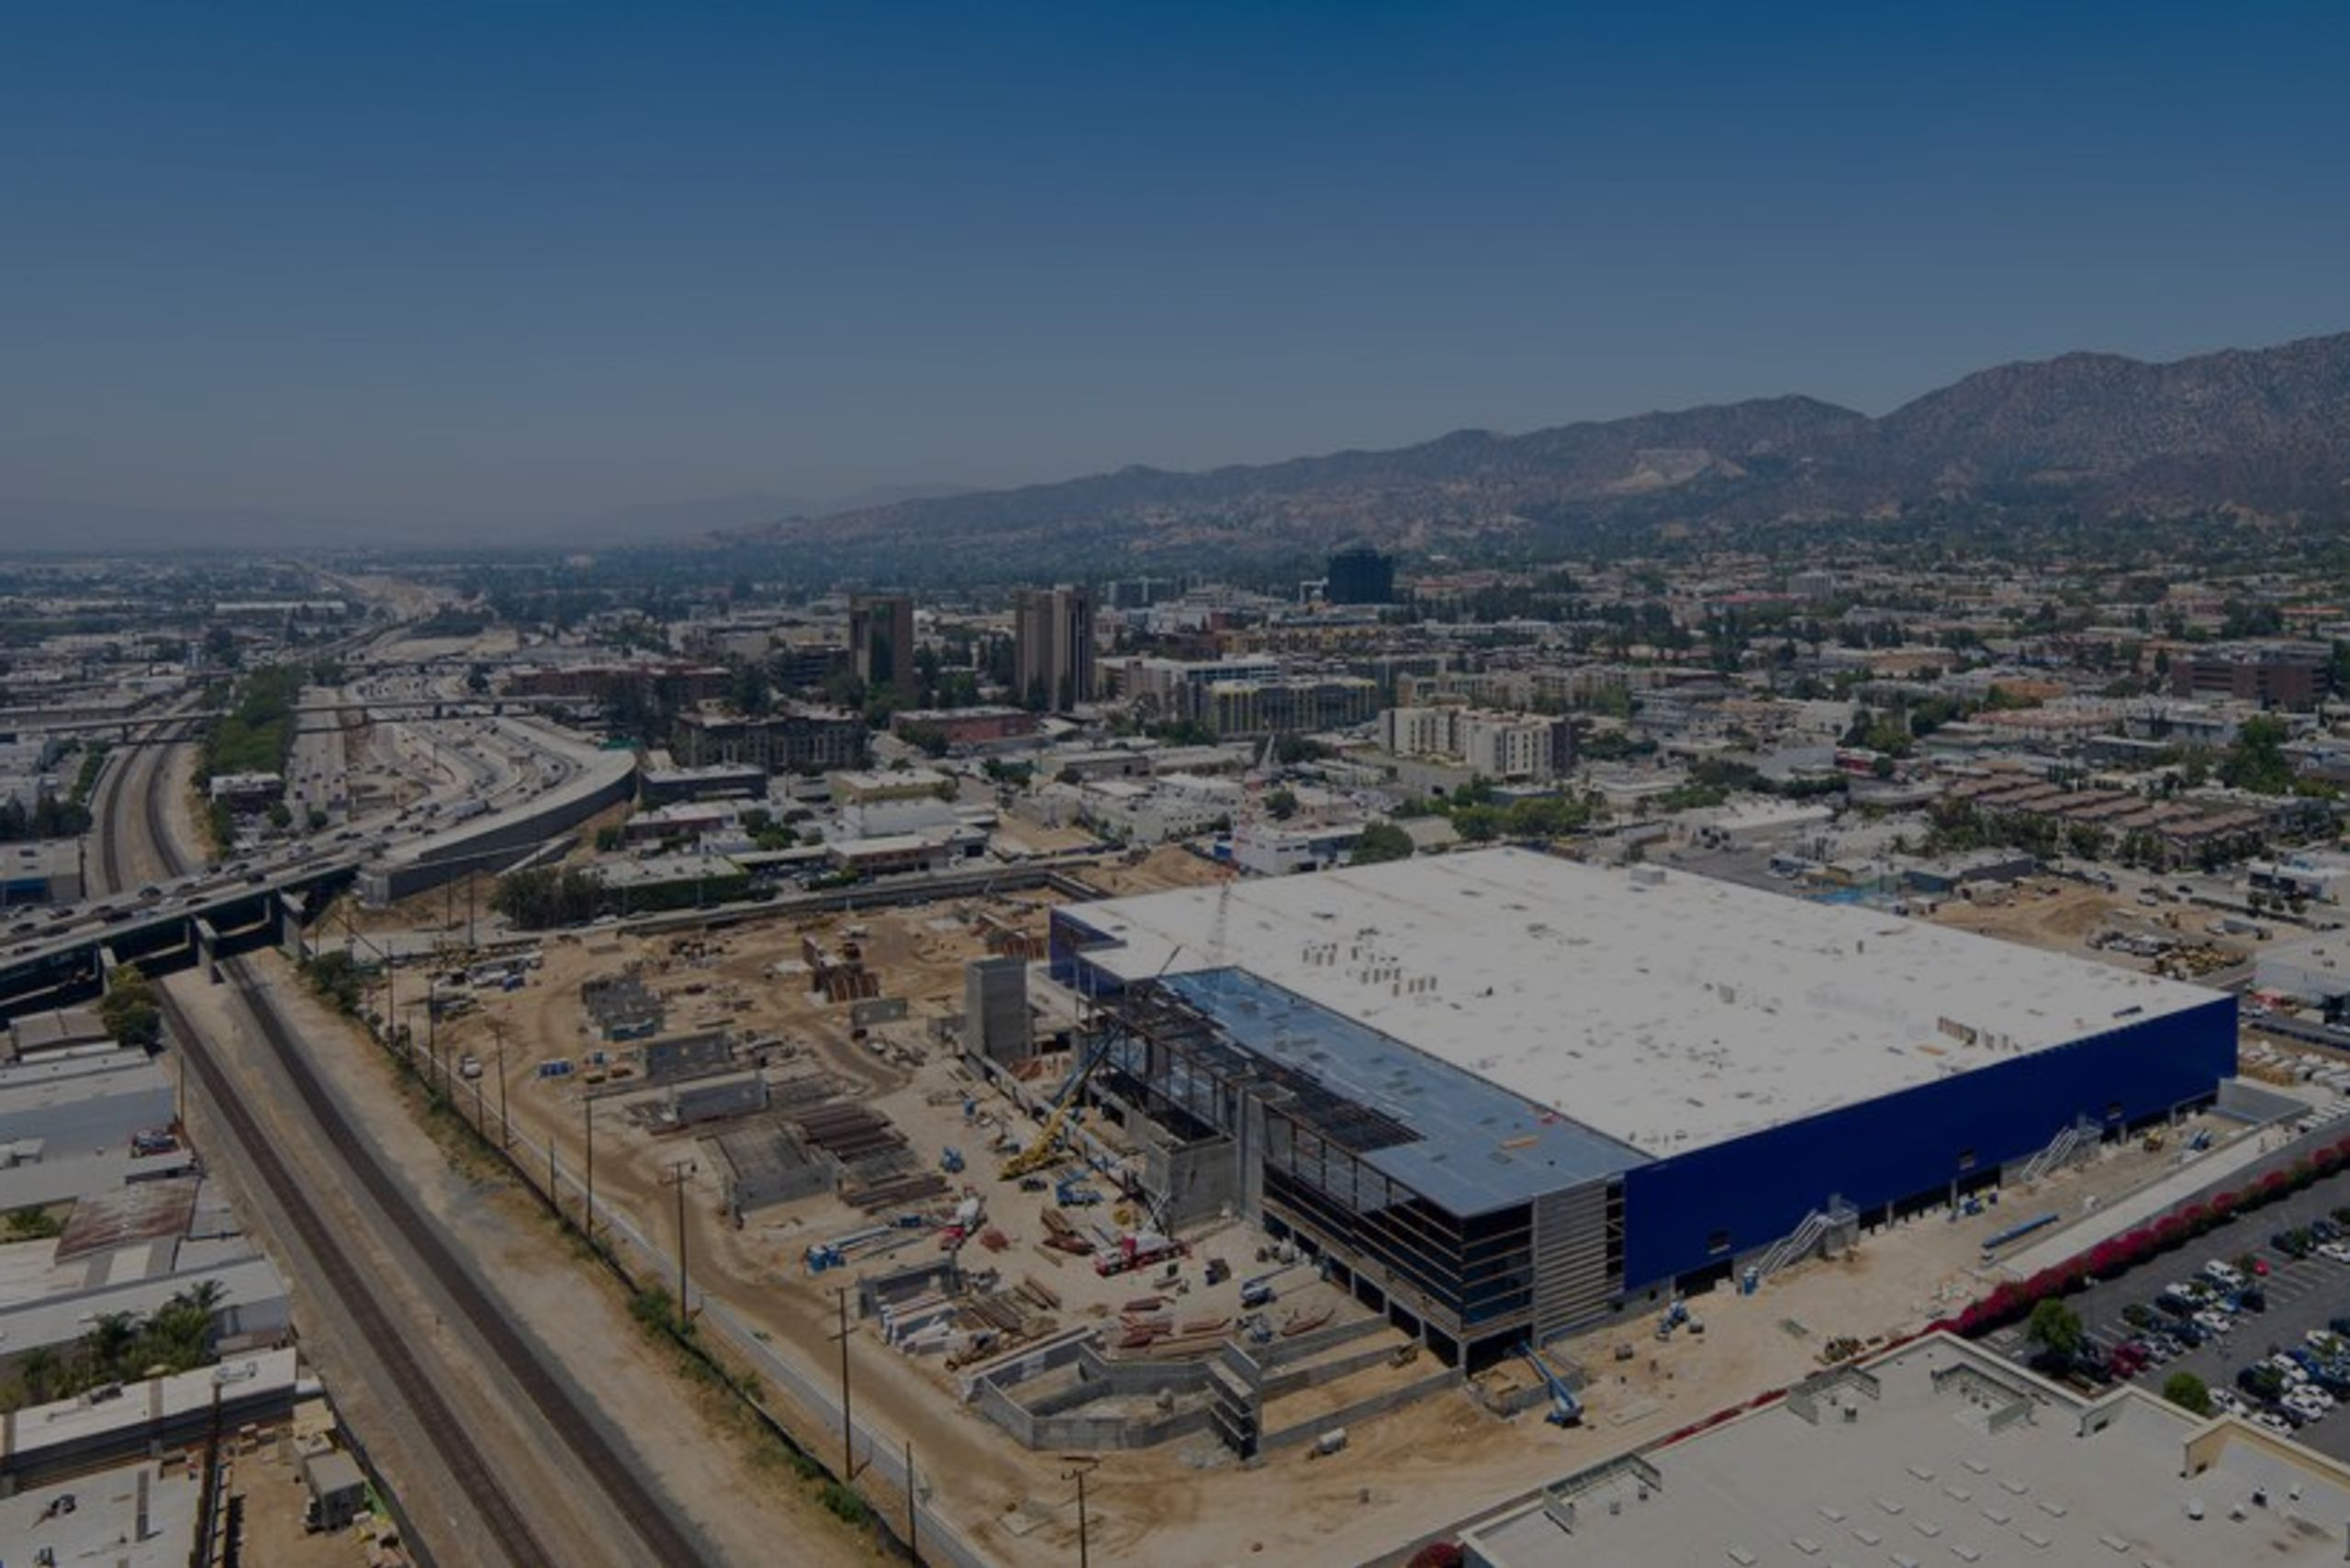 The biggest Ikea in the U.S. will open next month in Burbank